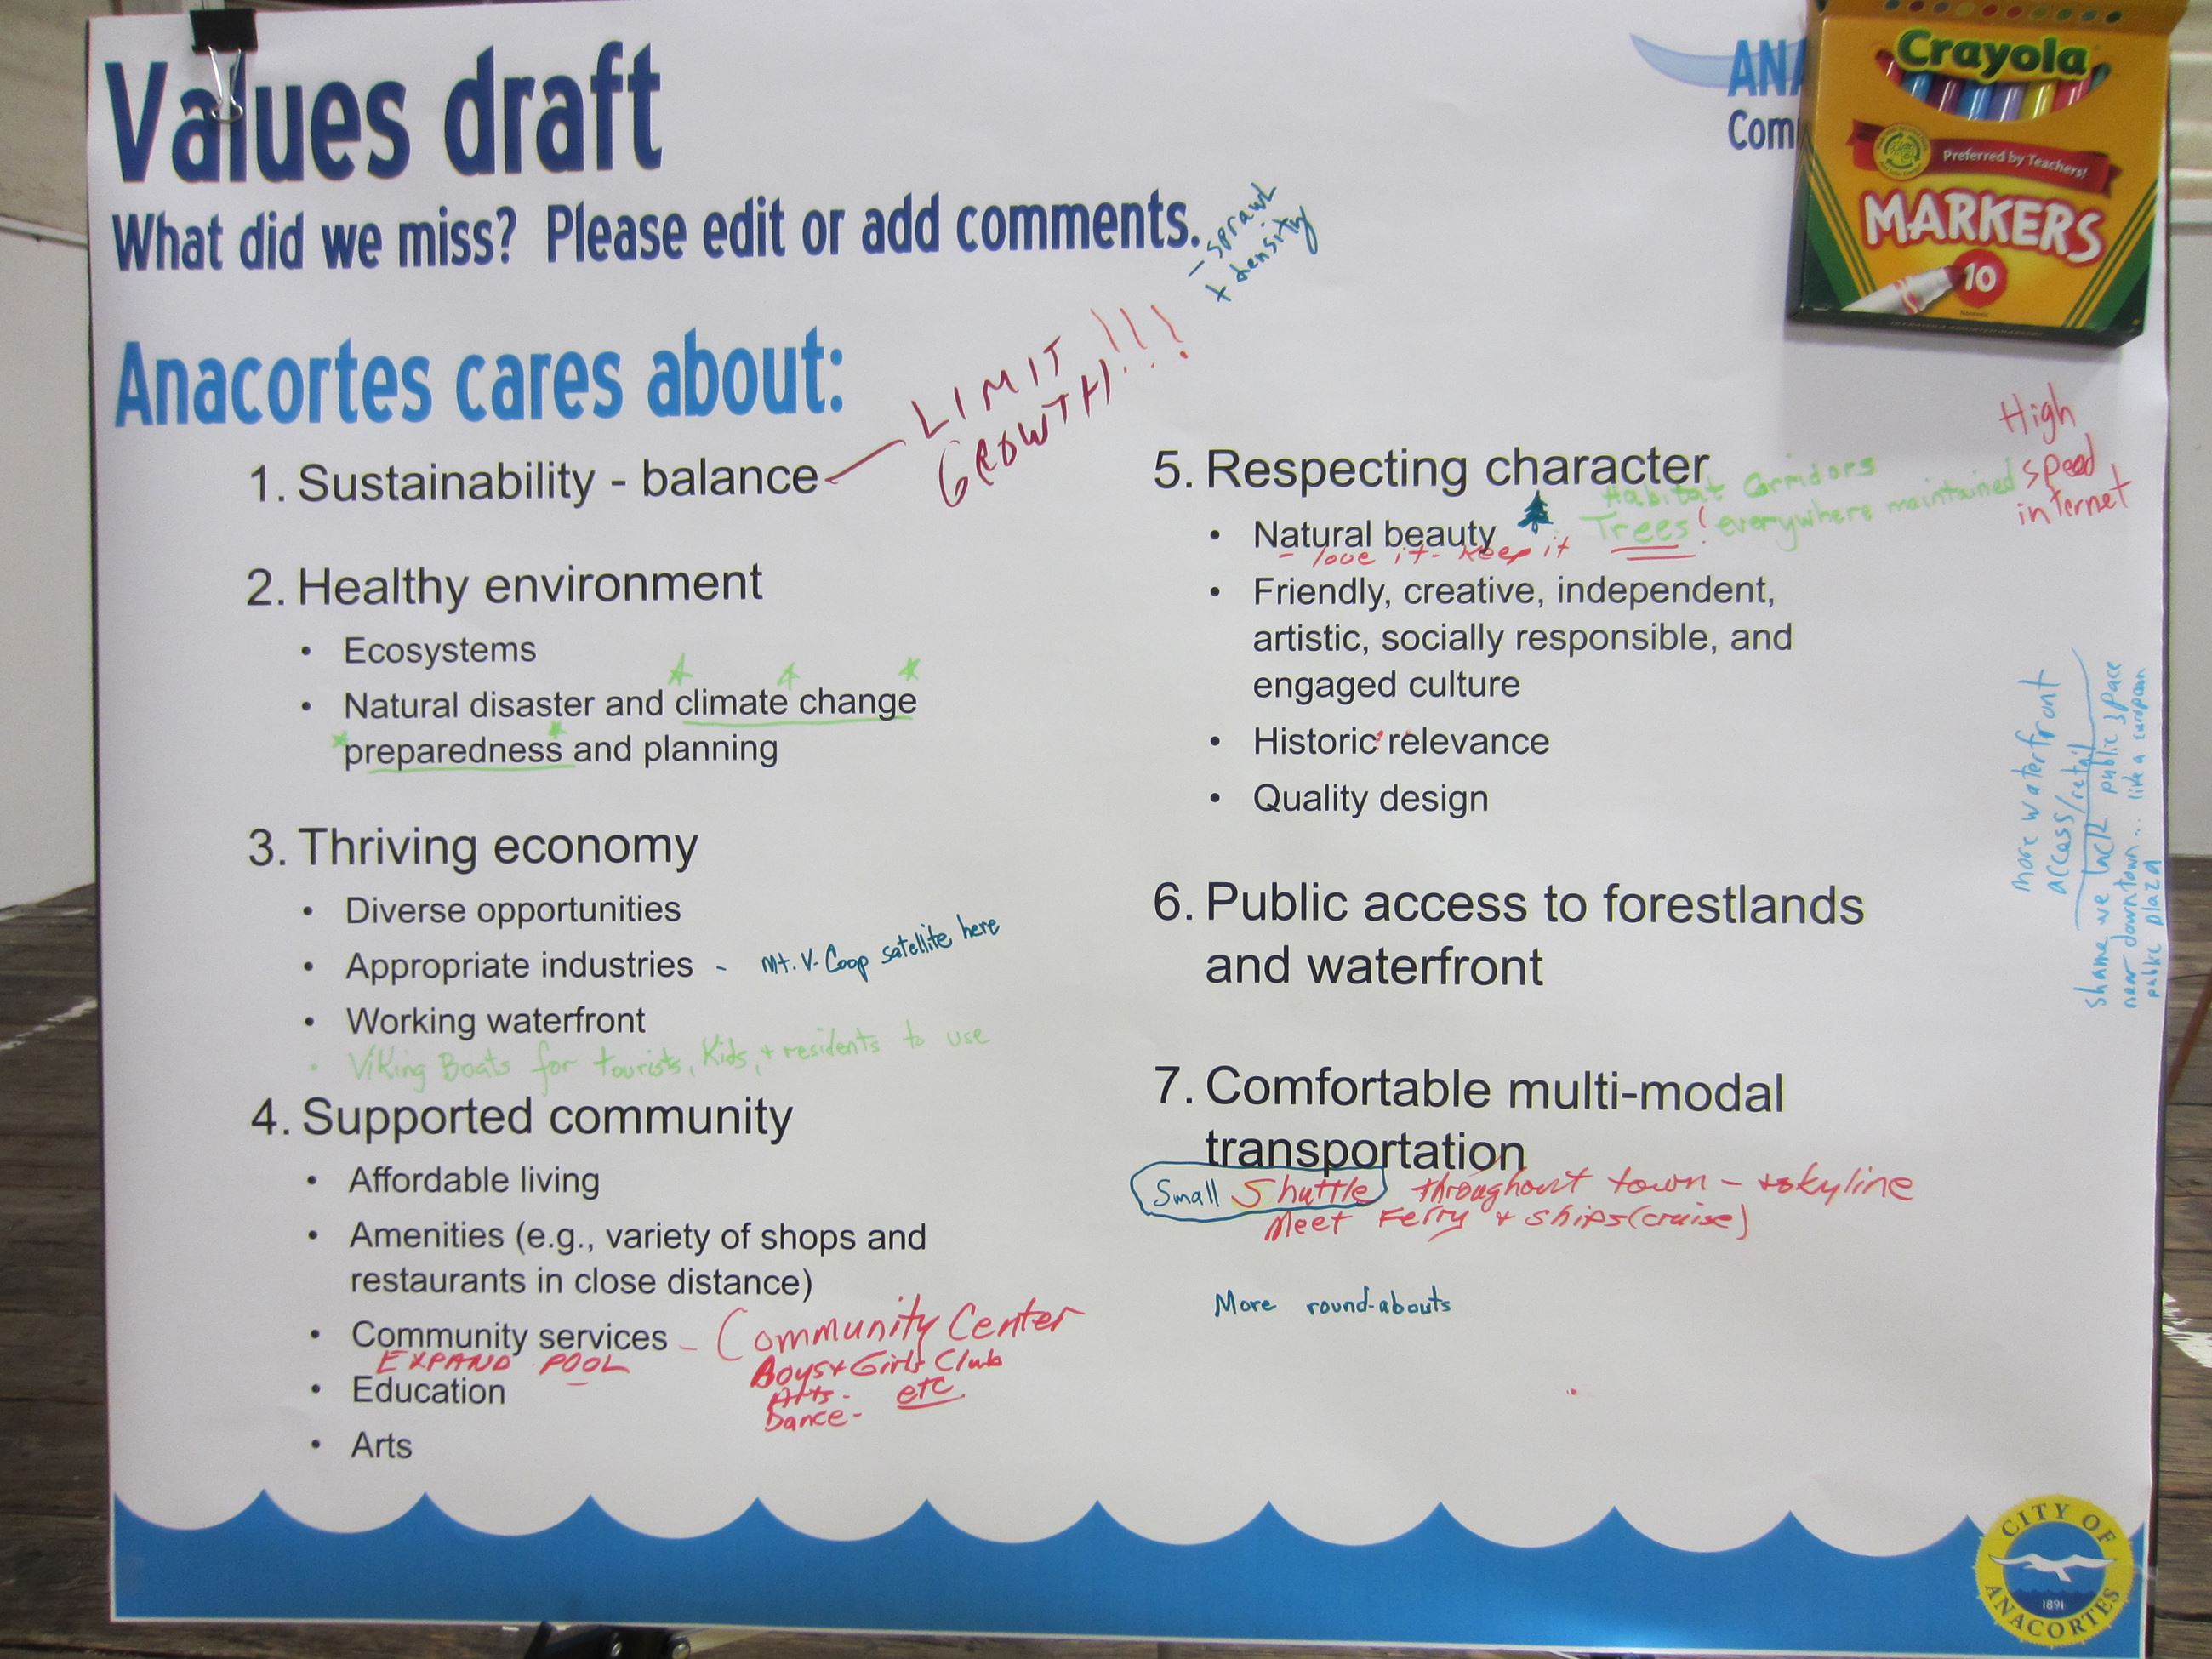 Values Draft Anacortes Cares About Chart